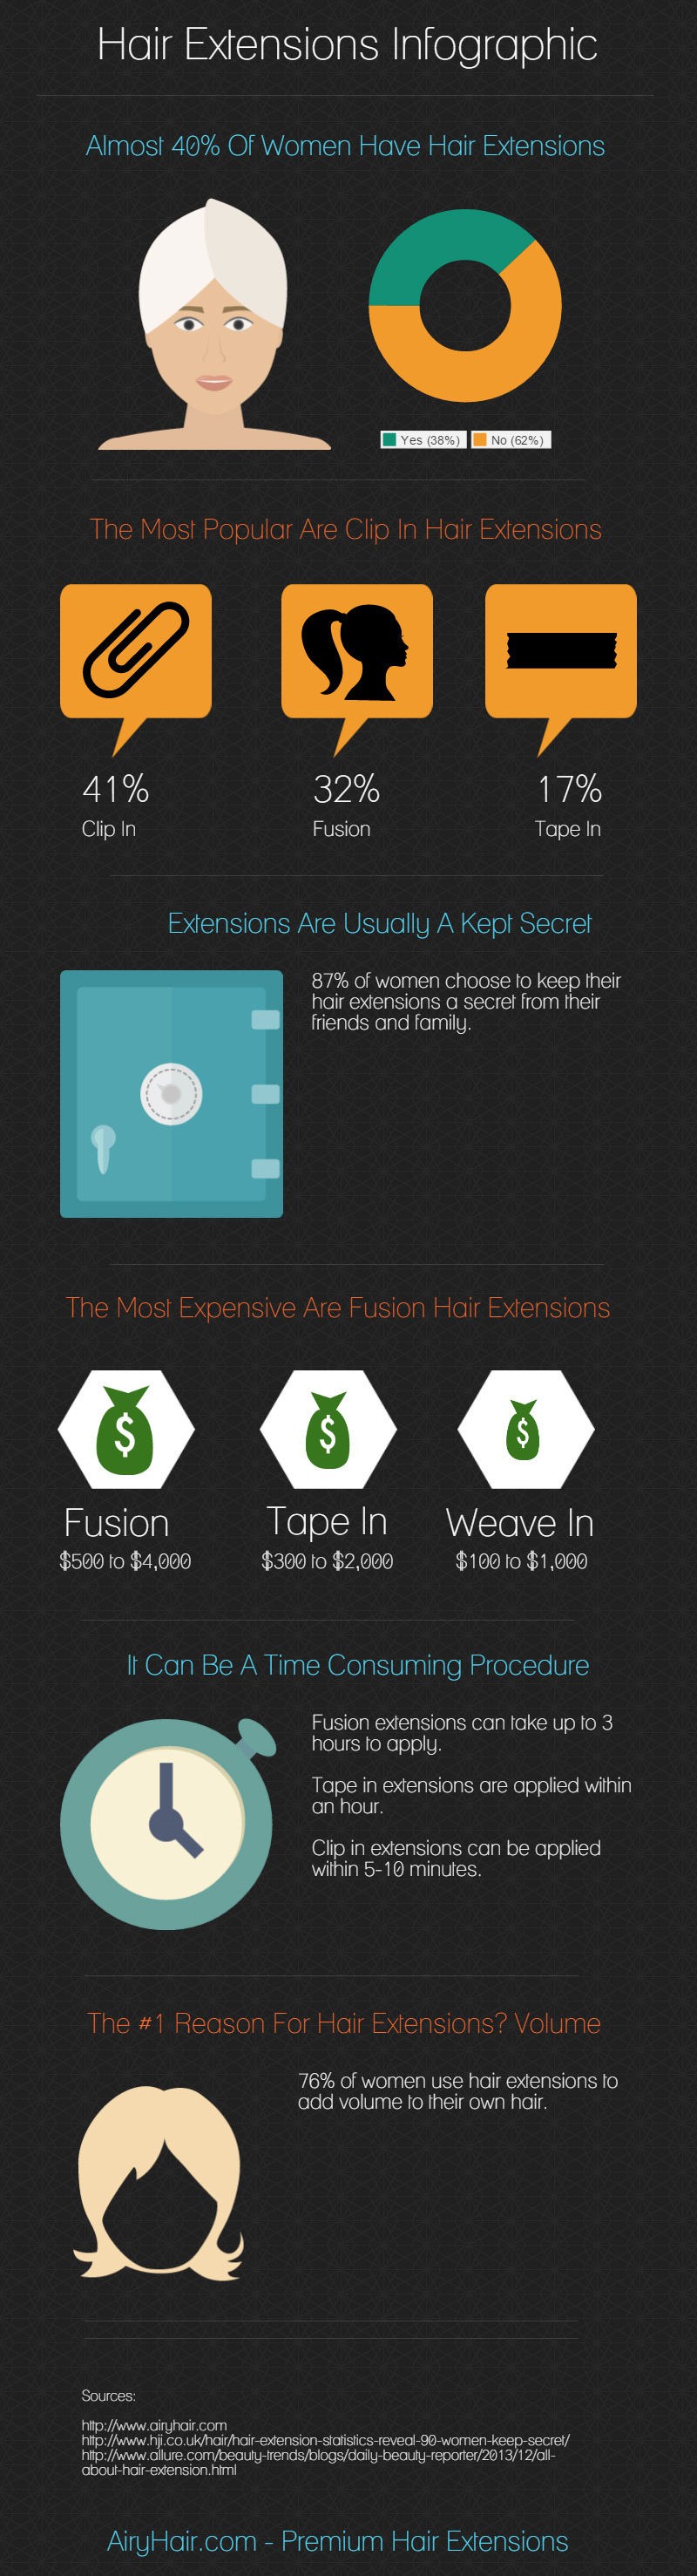 hair-extensions-infographic-plaza